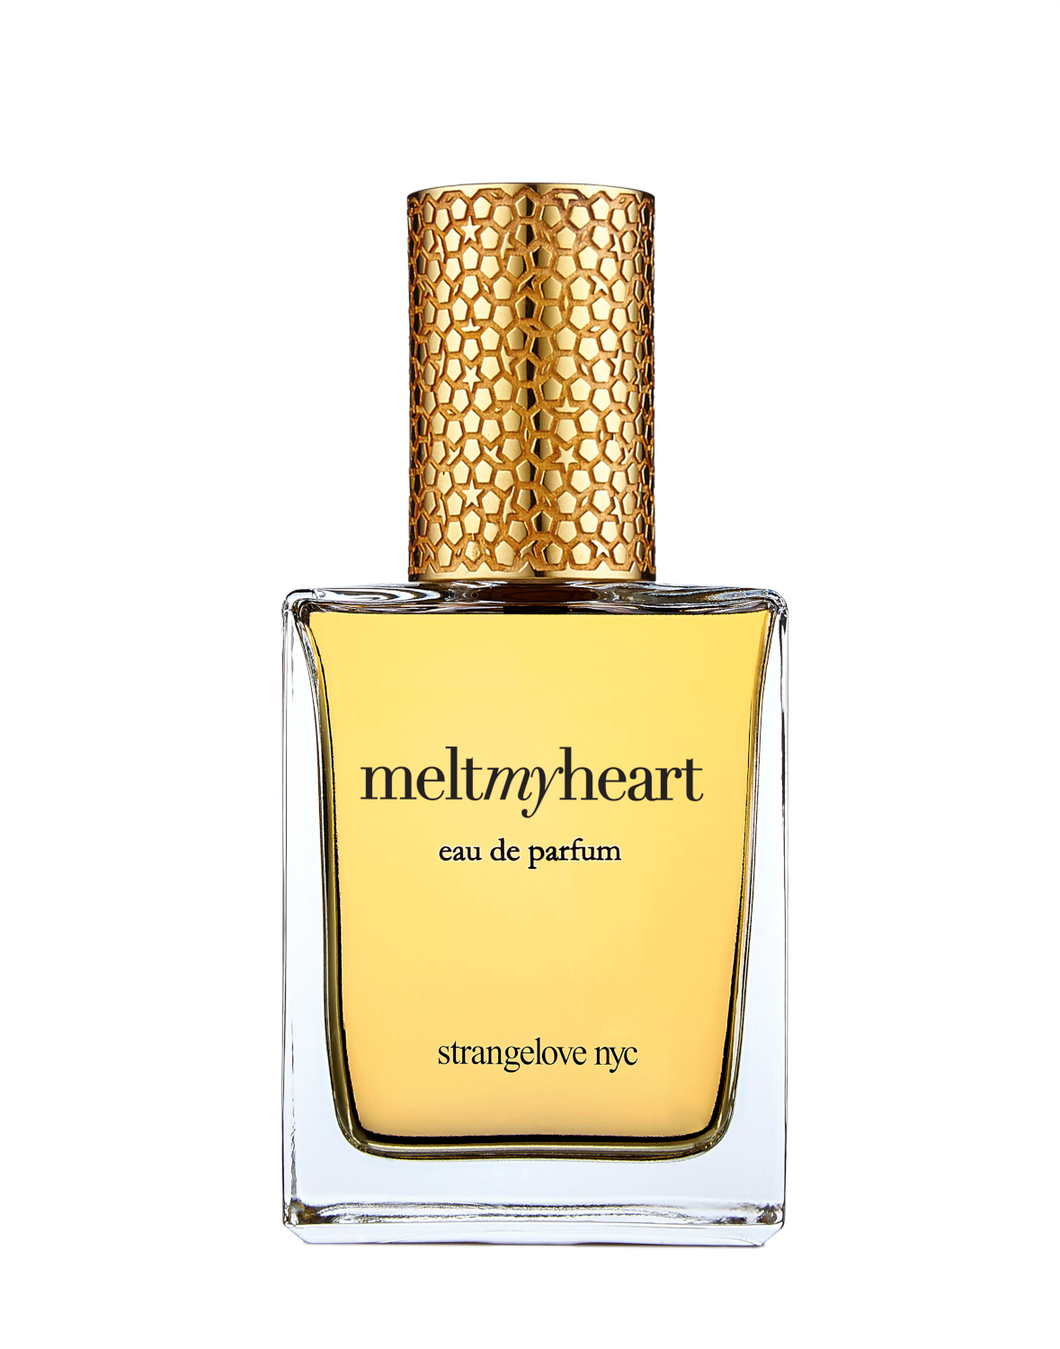 meltmyheart 50ml parfum